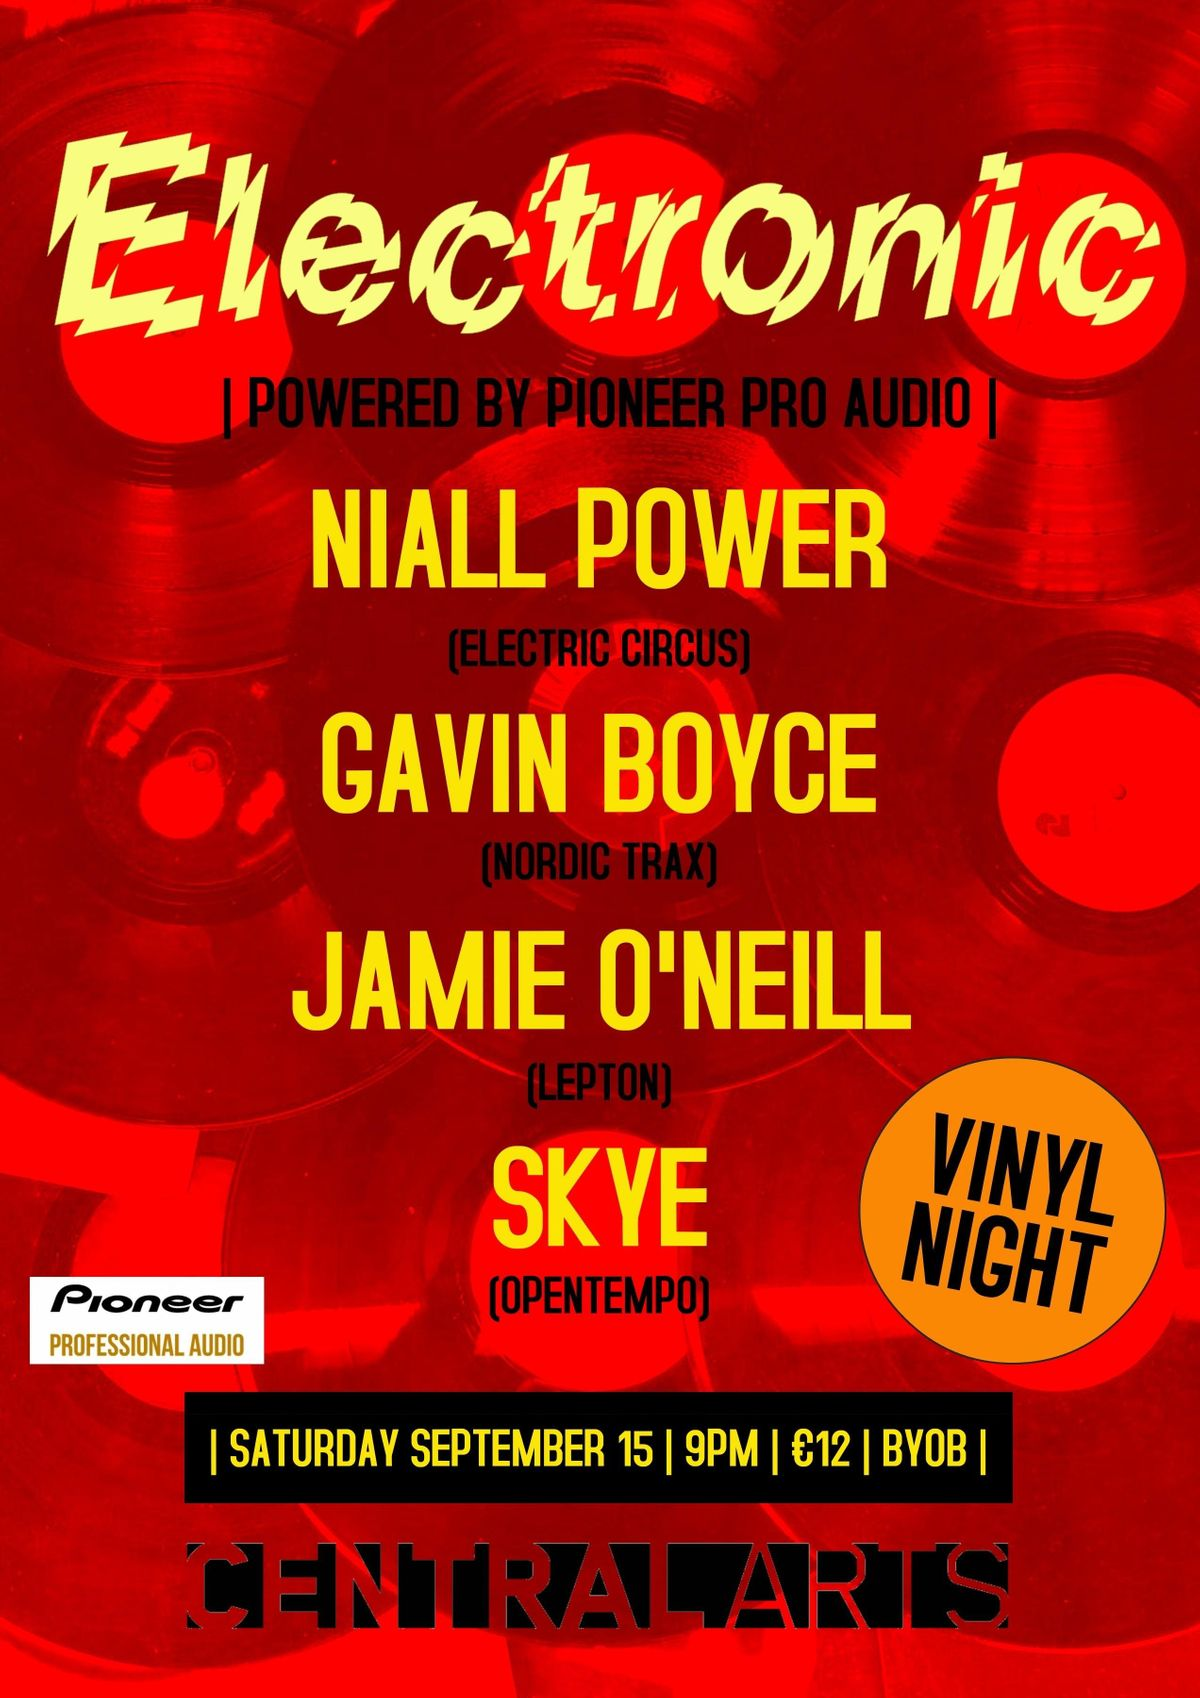 Electronic - Vinyl Night